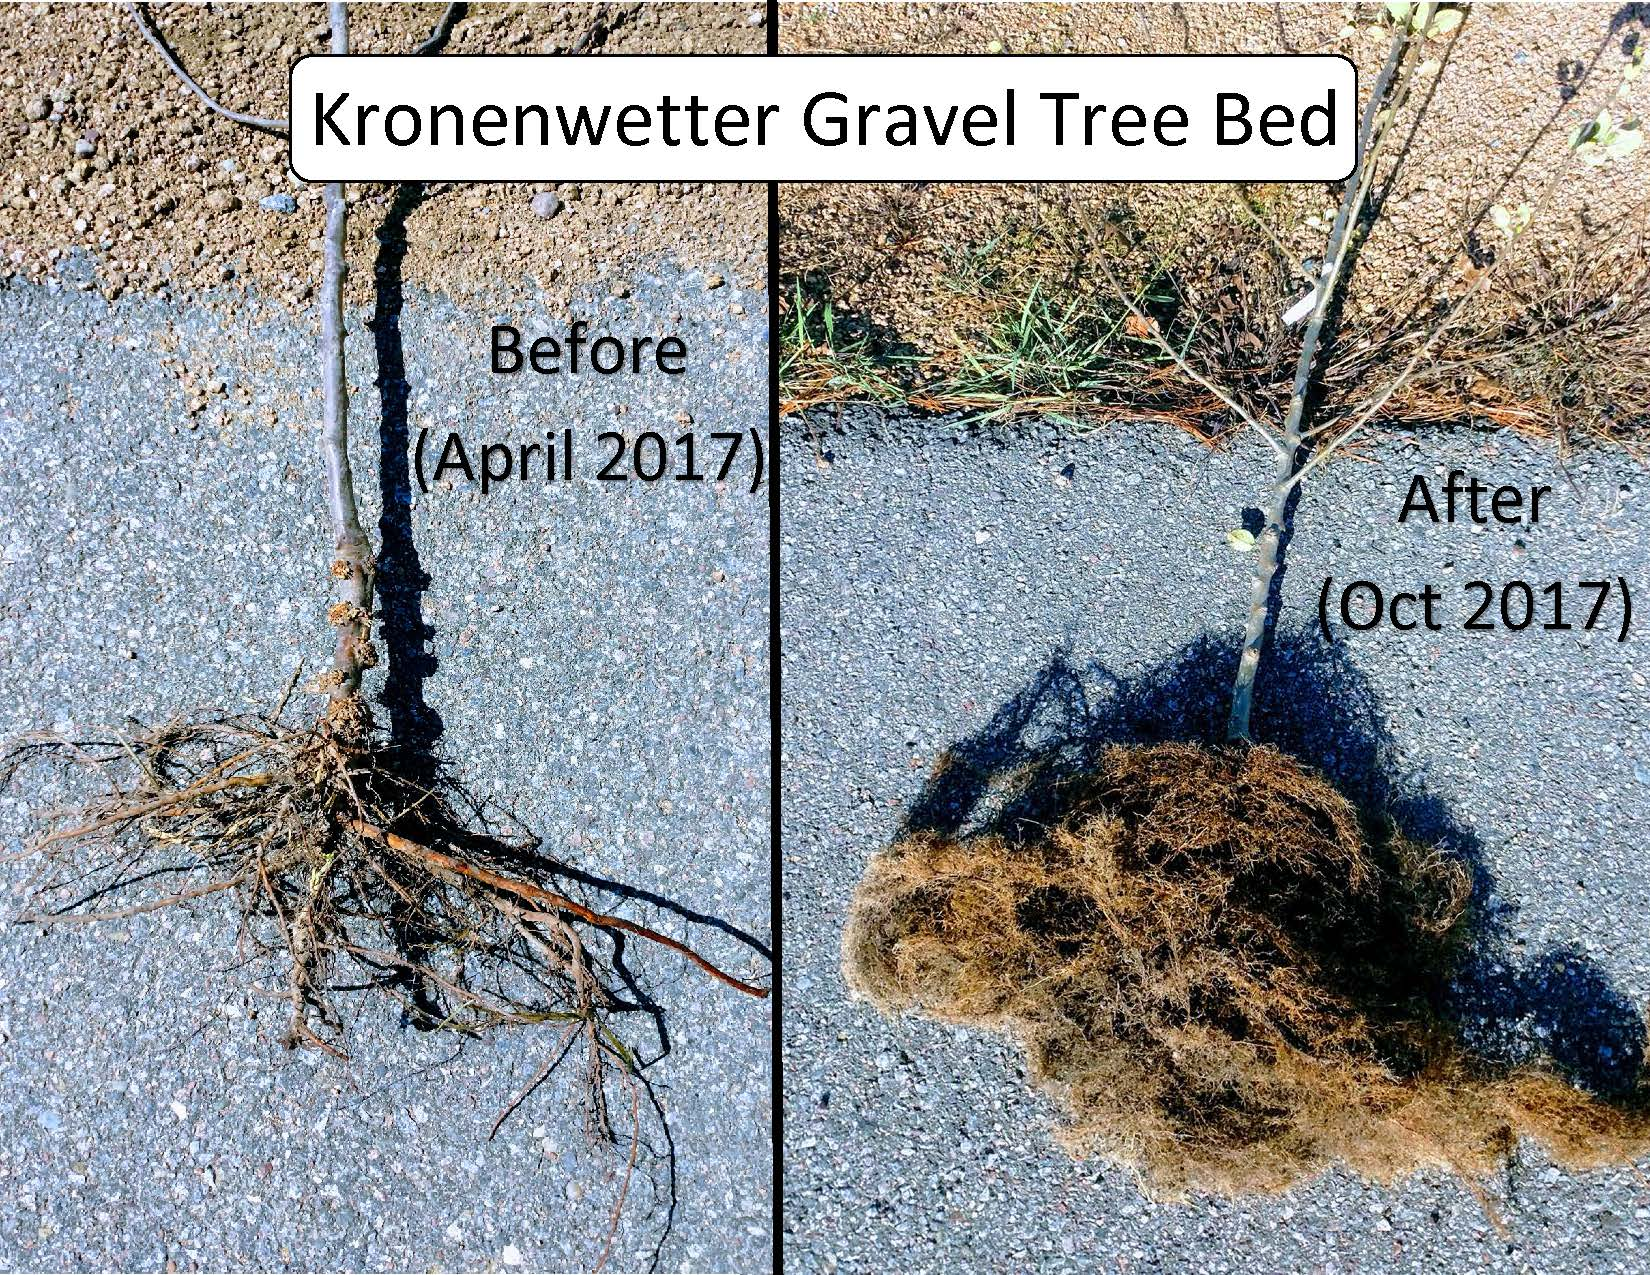 Before and After Tree Comparsion of Roots from Gravel Tree Bed